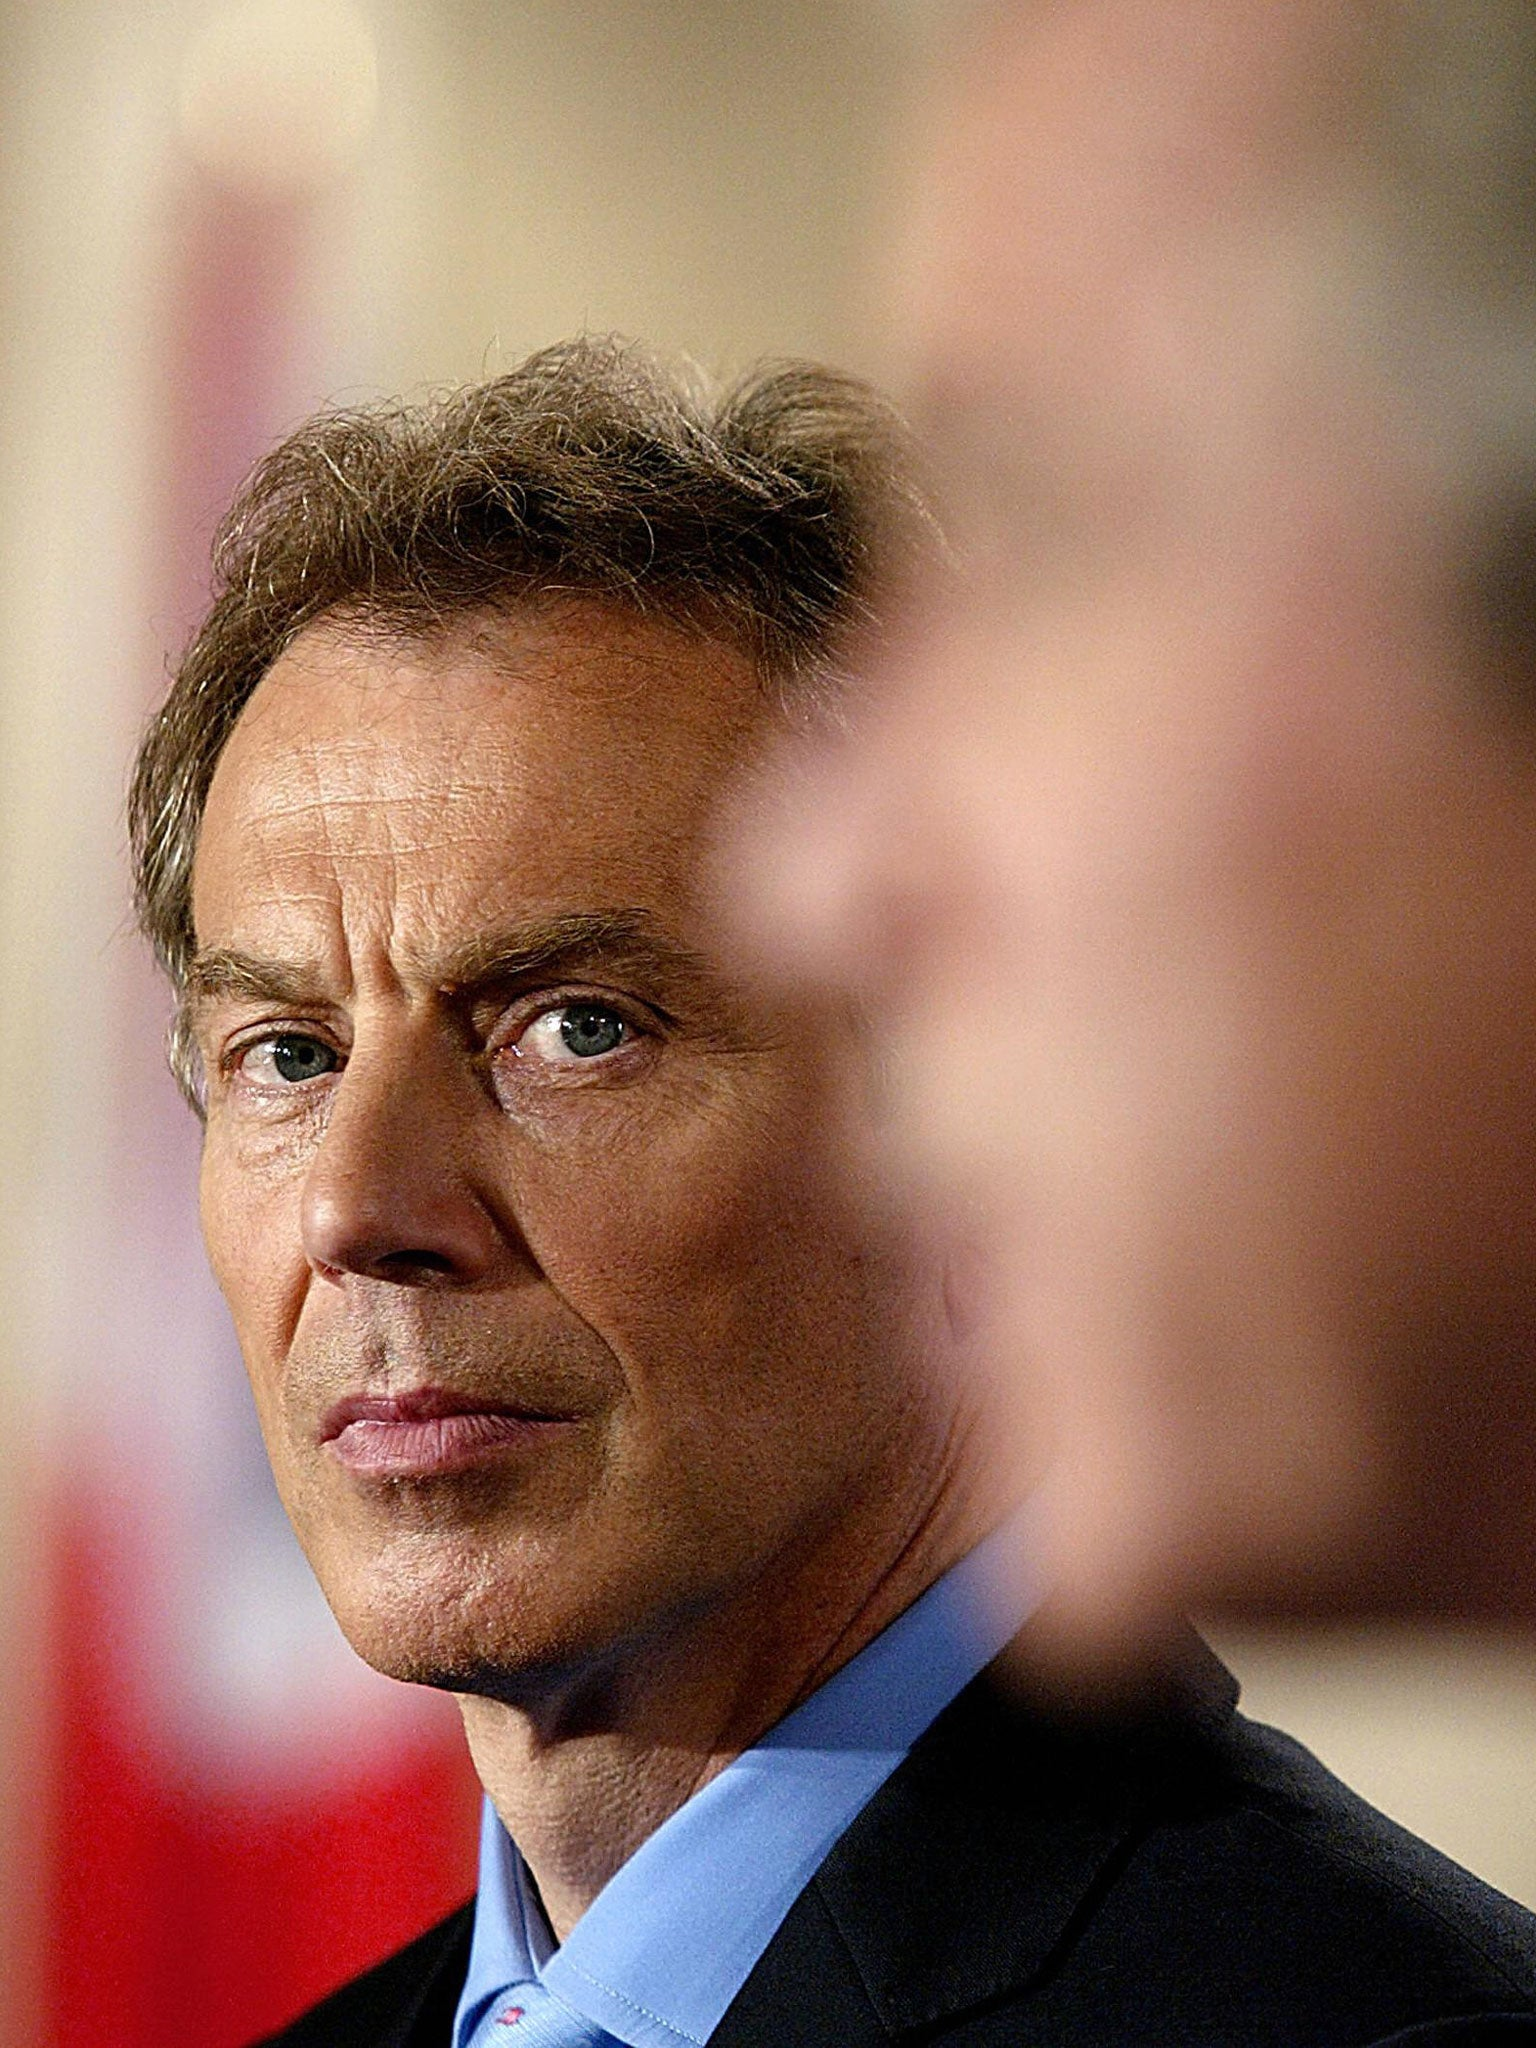 Tony Blair 'knew everything about CIA interrogation programme' | The Independent